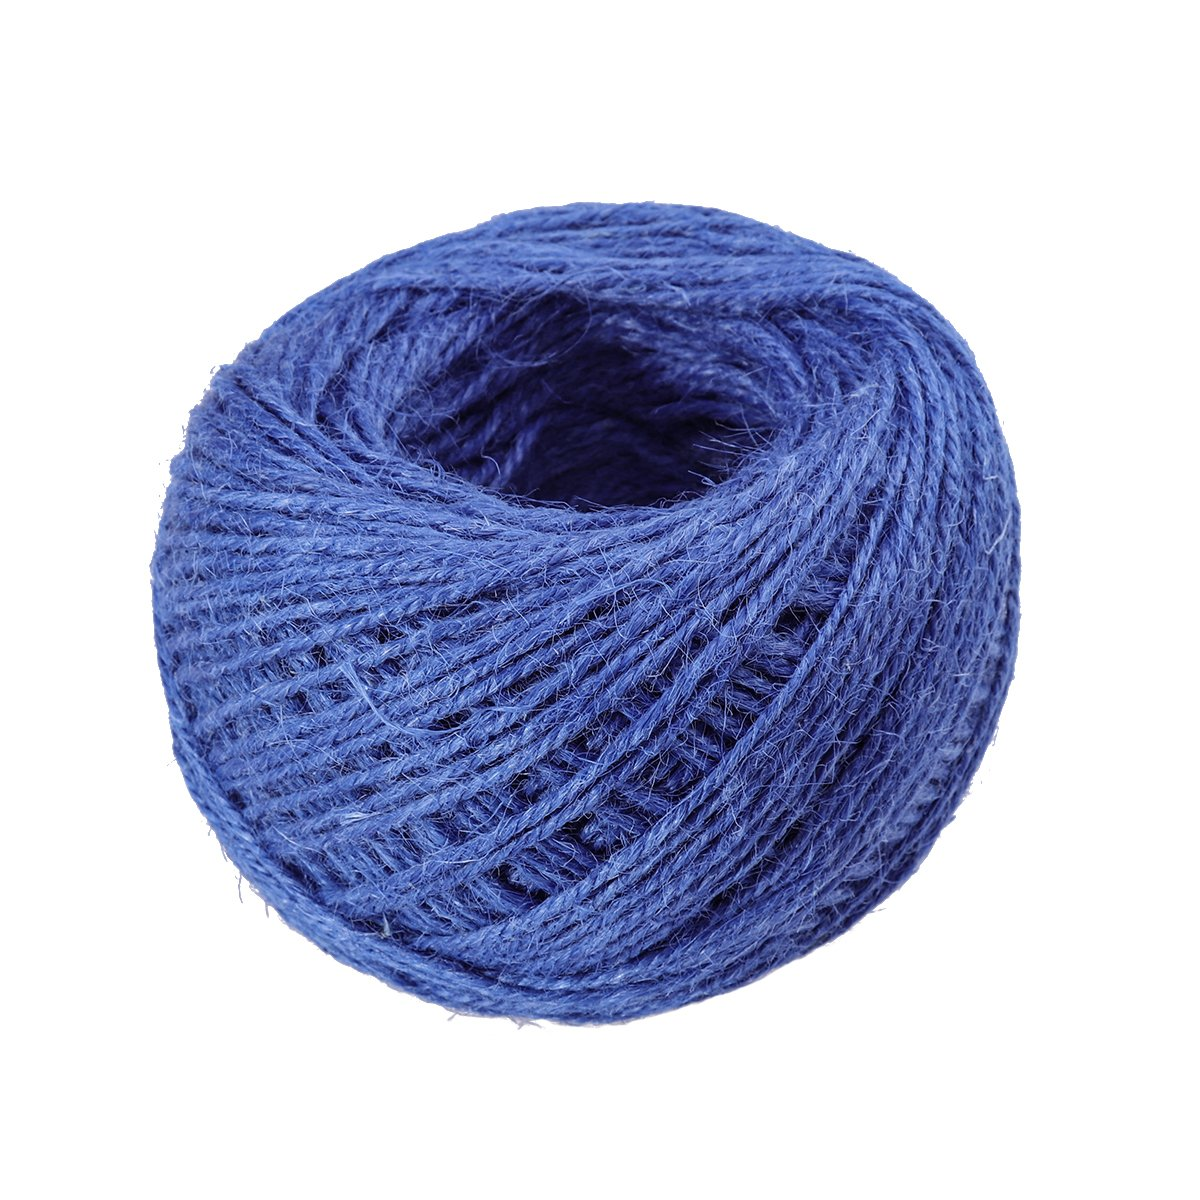 ULTNICE 3 Rolls Jute Twine String Rope String Hemp Cord Rope for Gift Packing Royal Blue